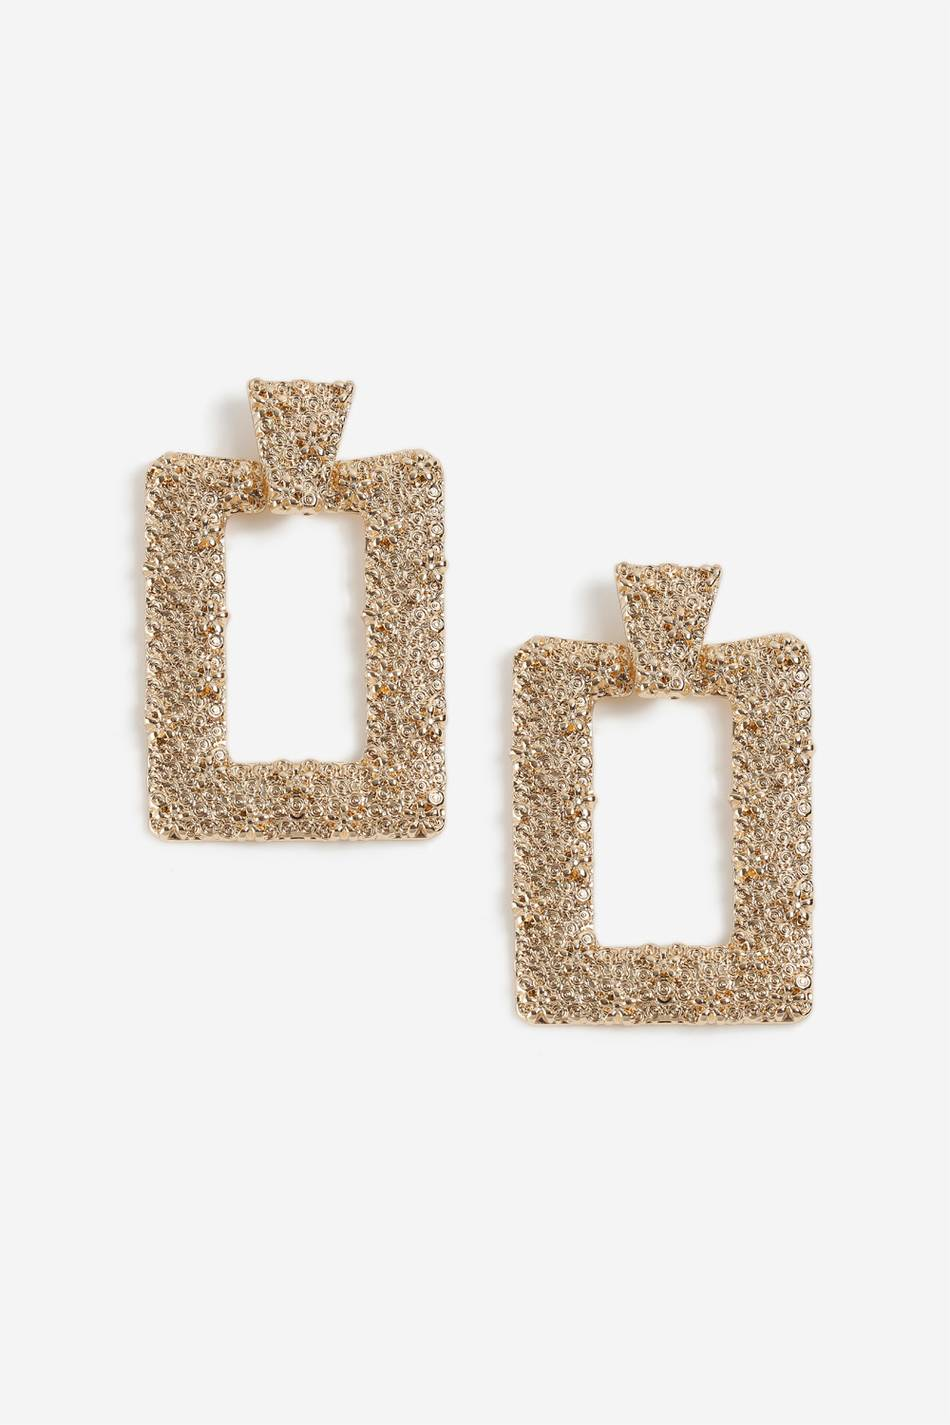 Gina Tricot GOLD SQUARE DOOR KNOCKER